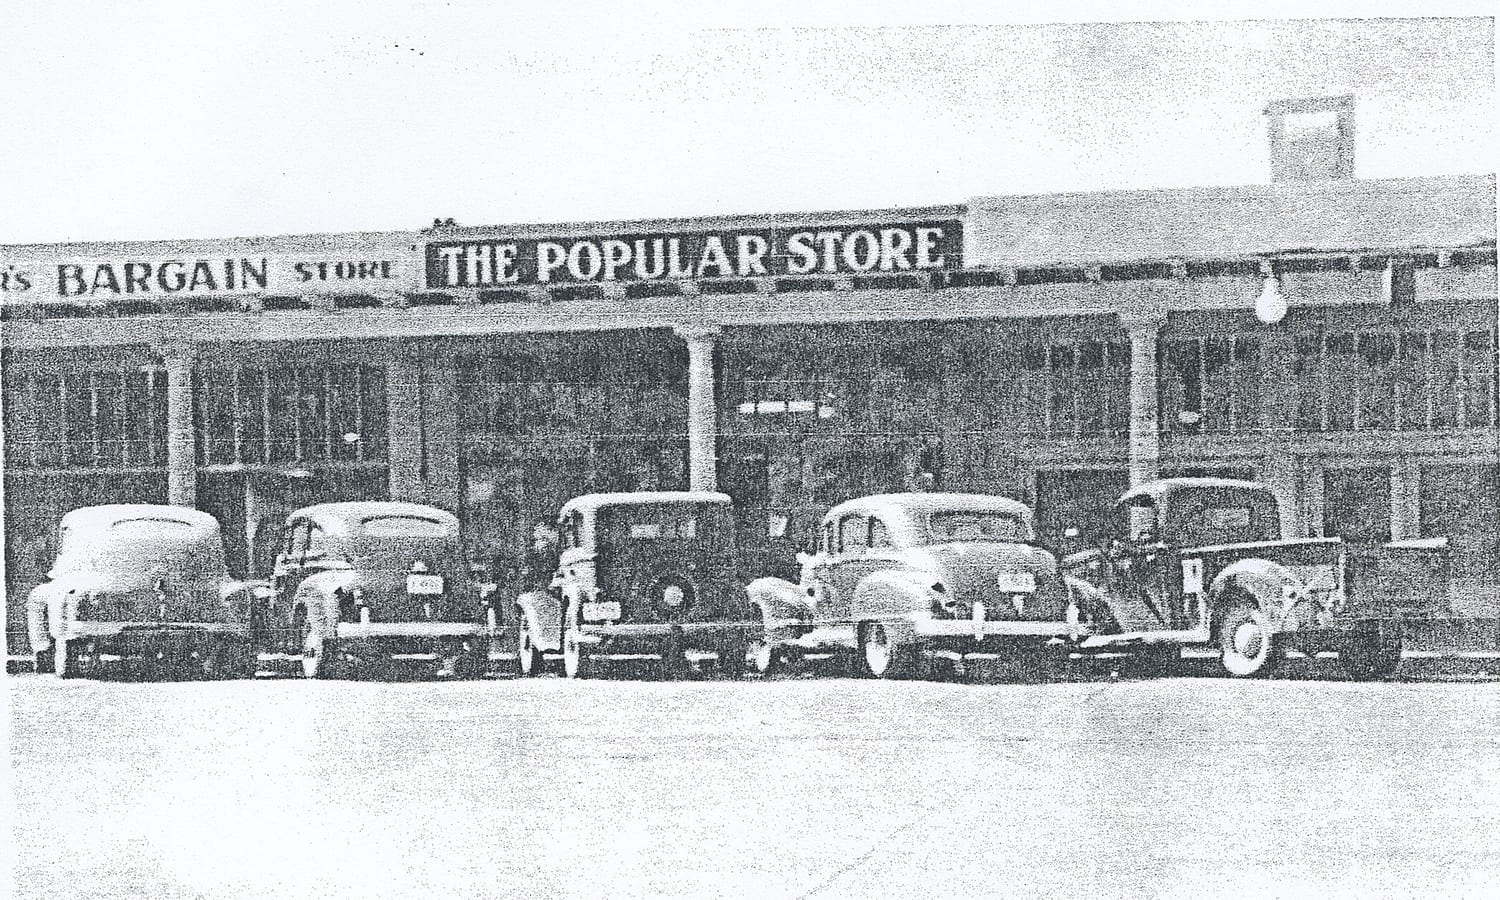 Serrano Brothers Popular Store, 1930s